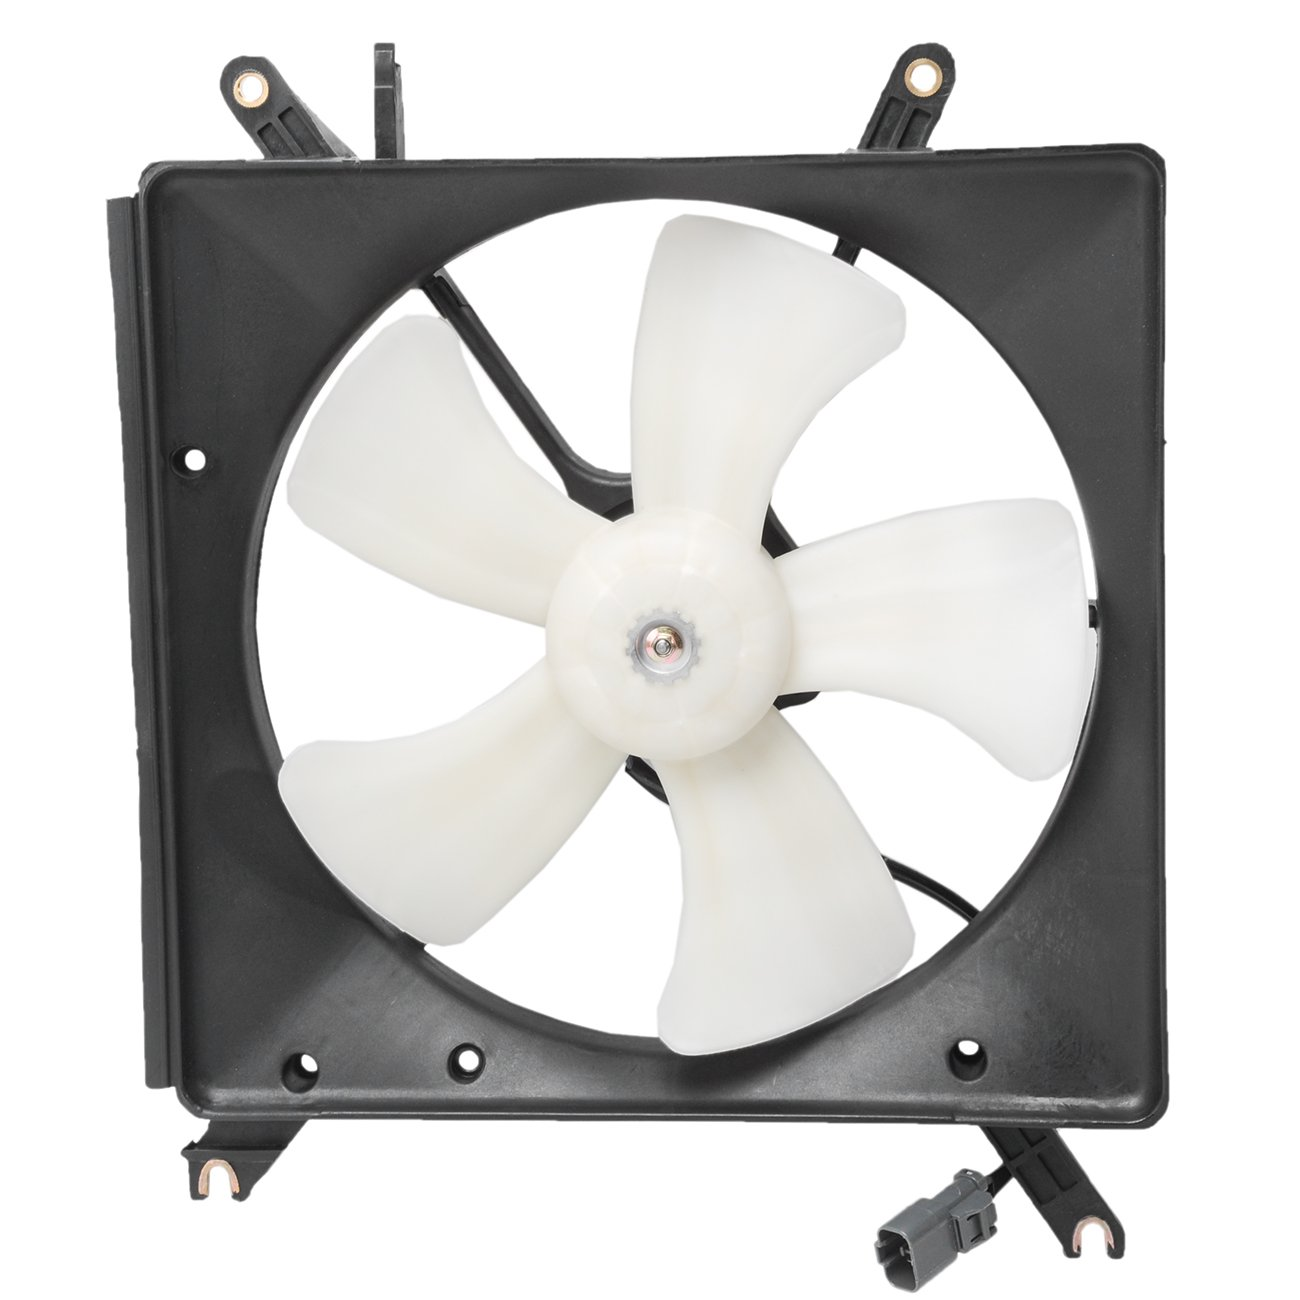 TOPAZ 19005-PP1-003 Radiator Cooling Fan Assembly for Honda Accord 1990-1993 2.2L